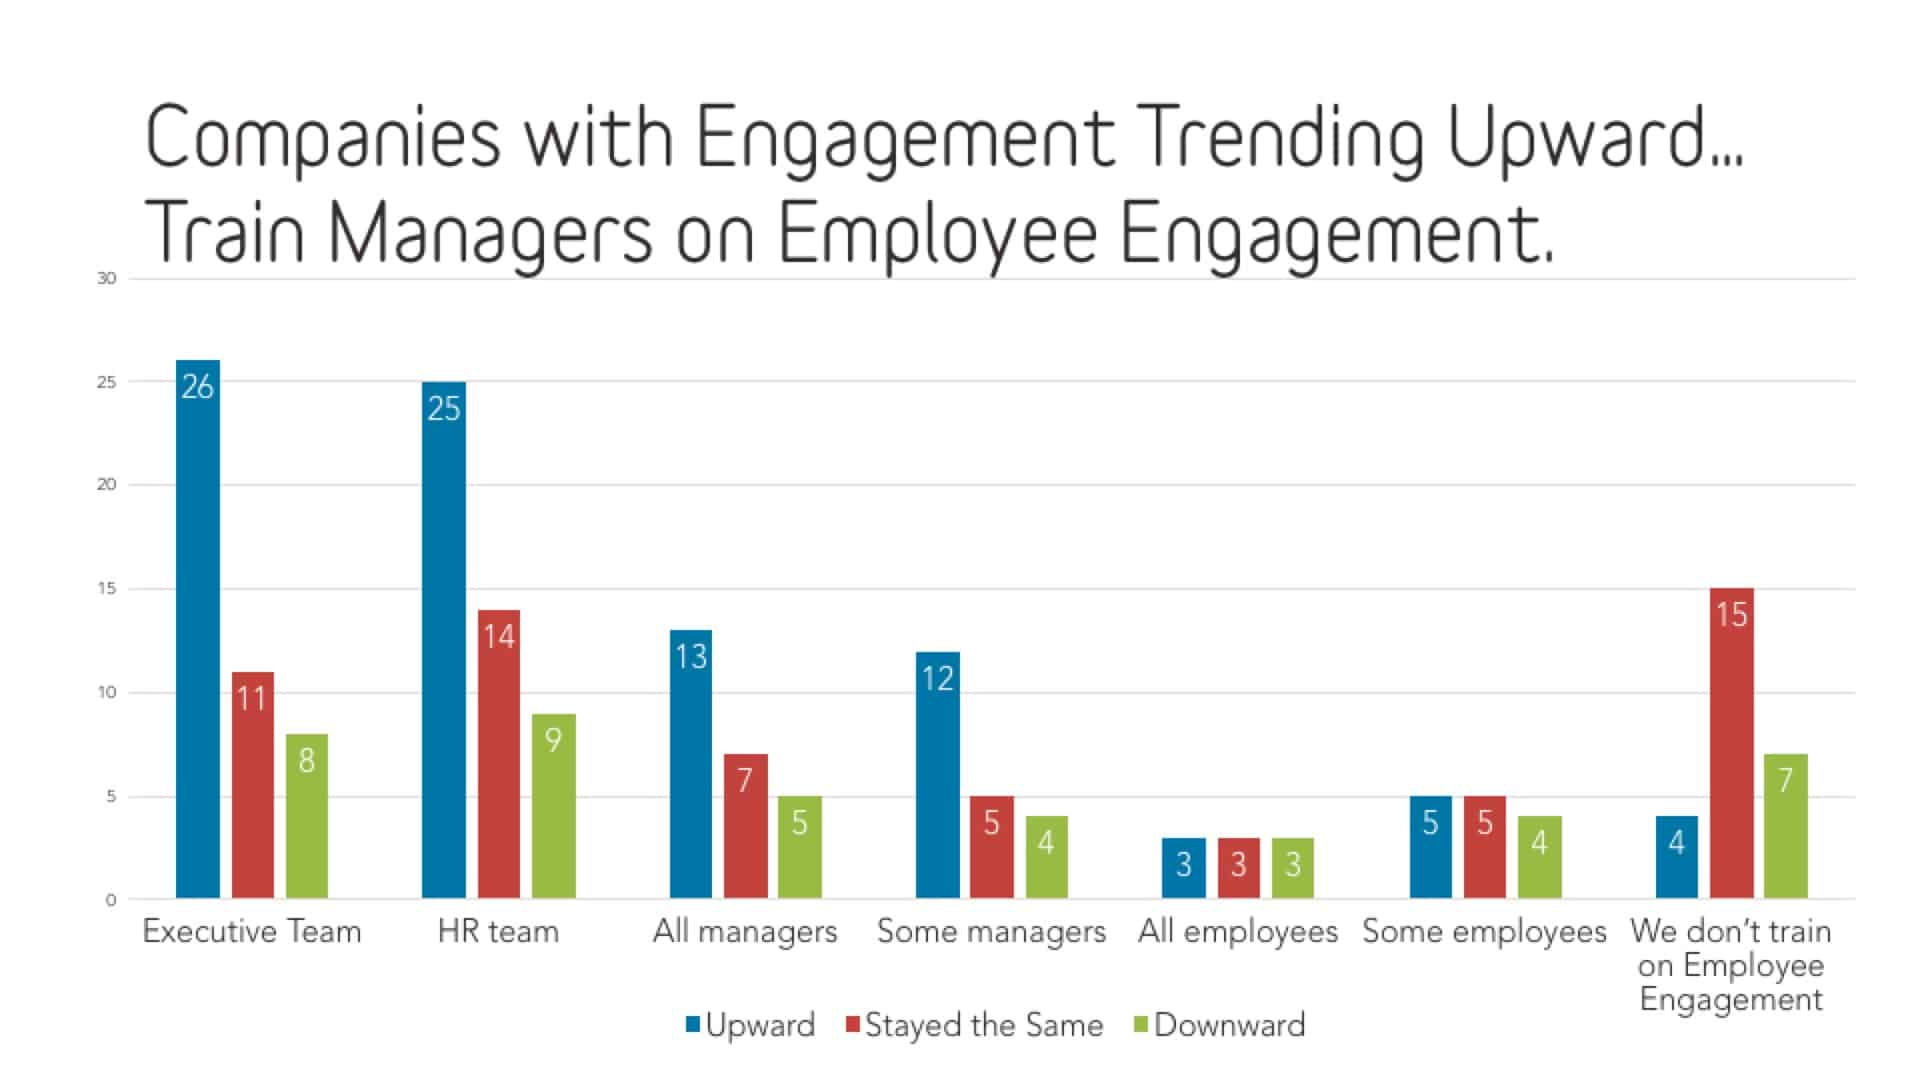 Train Managers on Employee Engagement